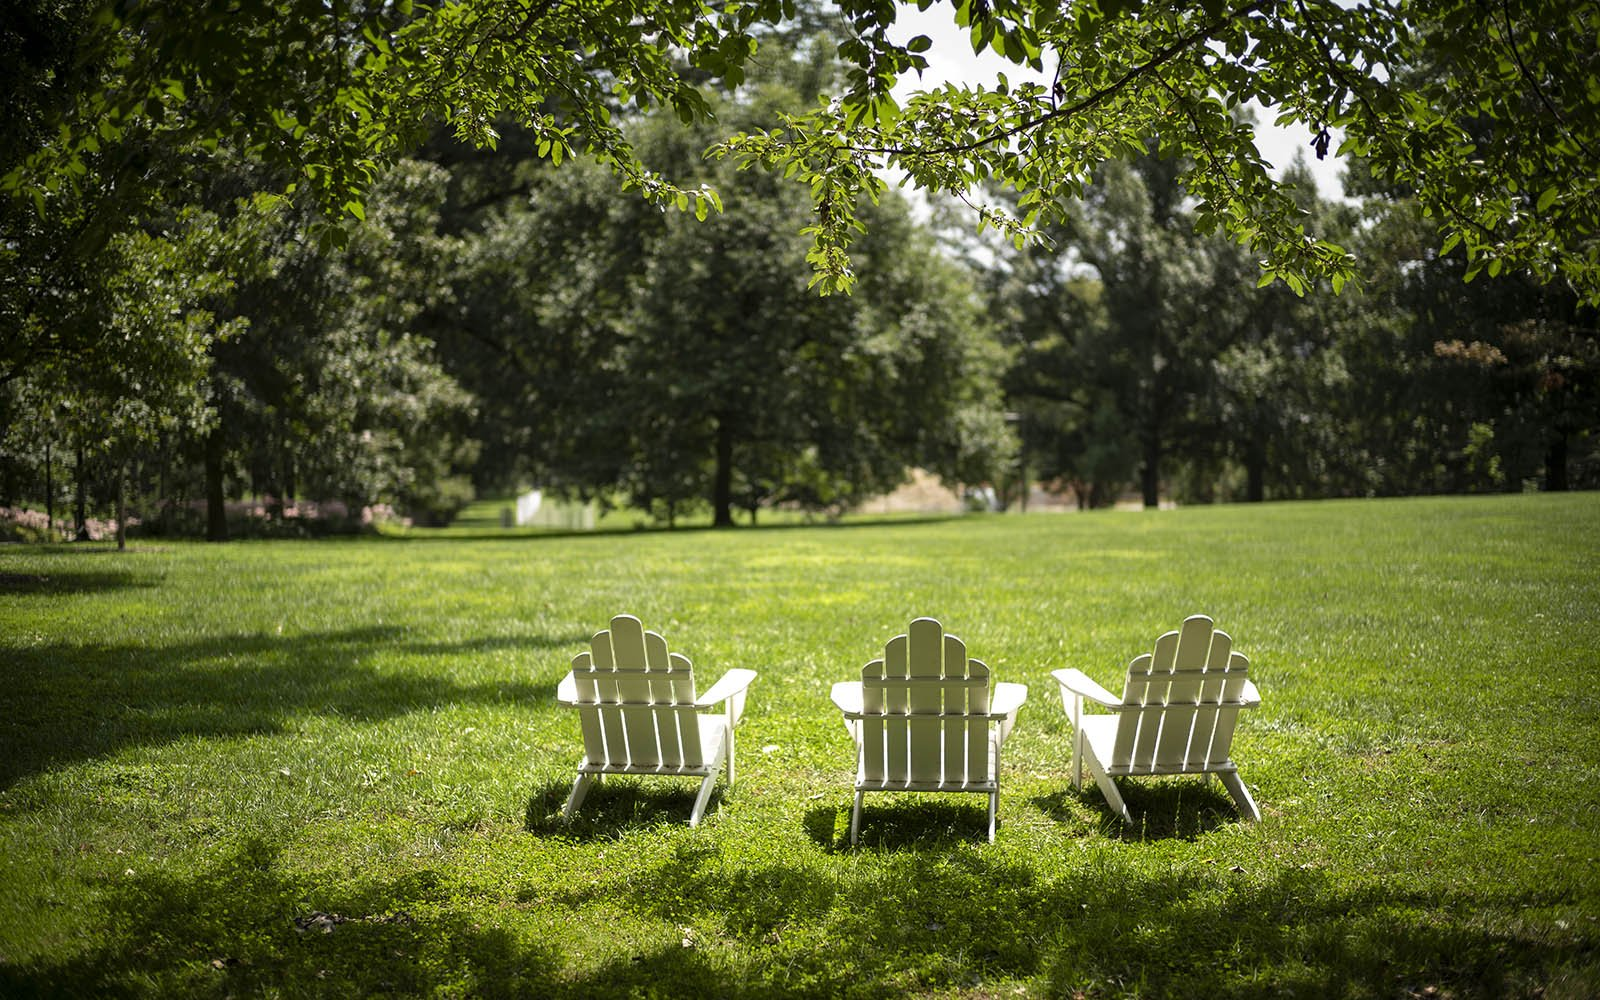 chairs of parrish beach